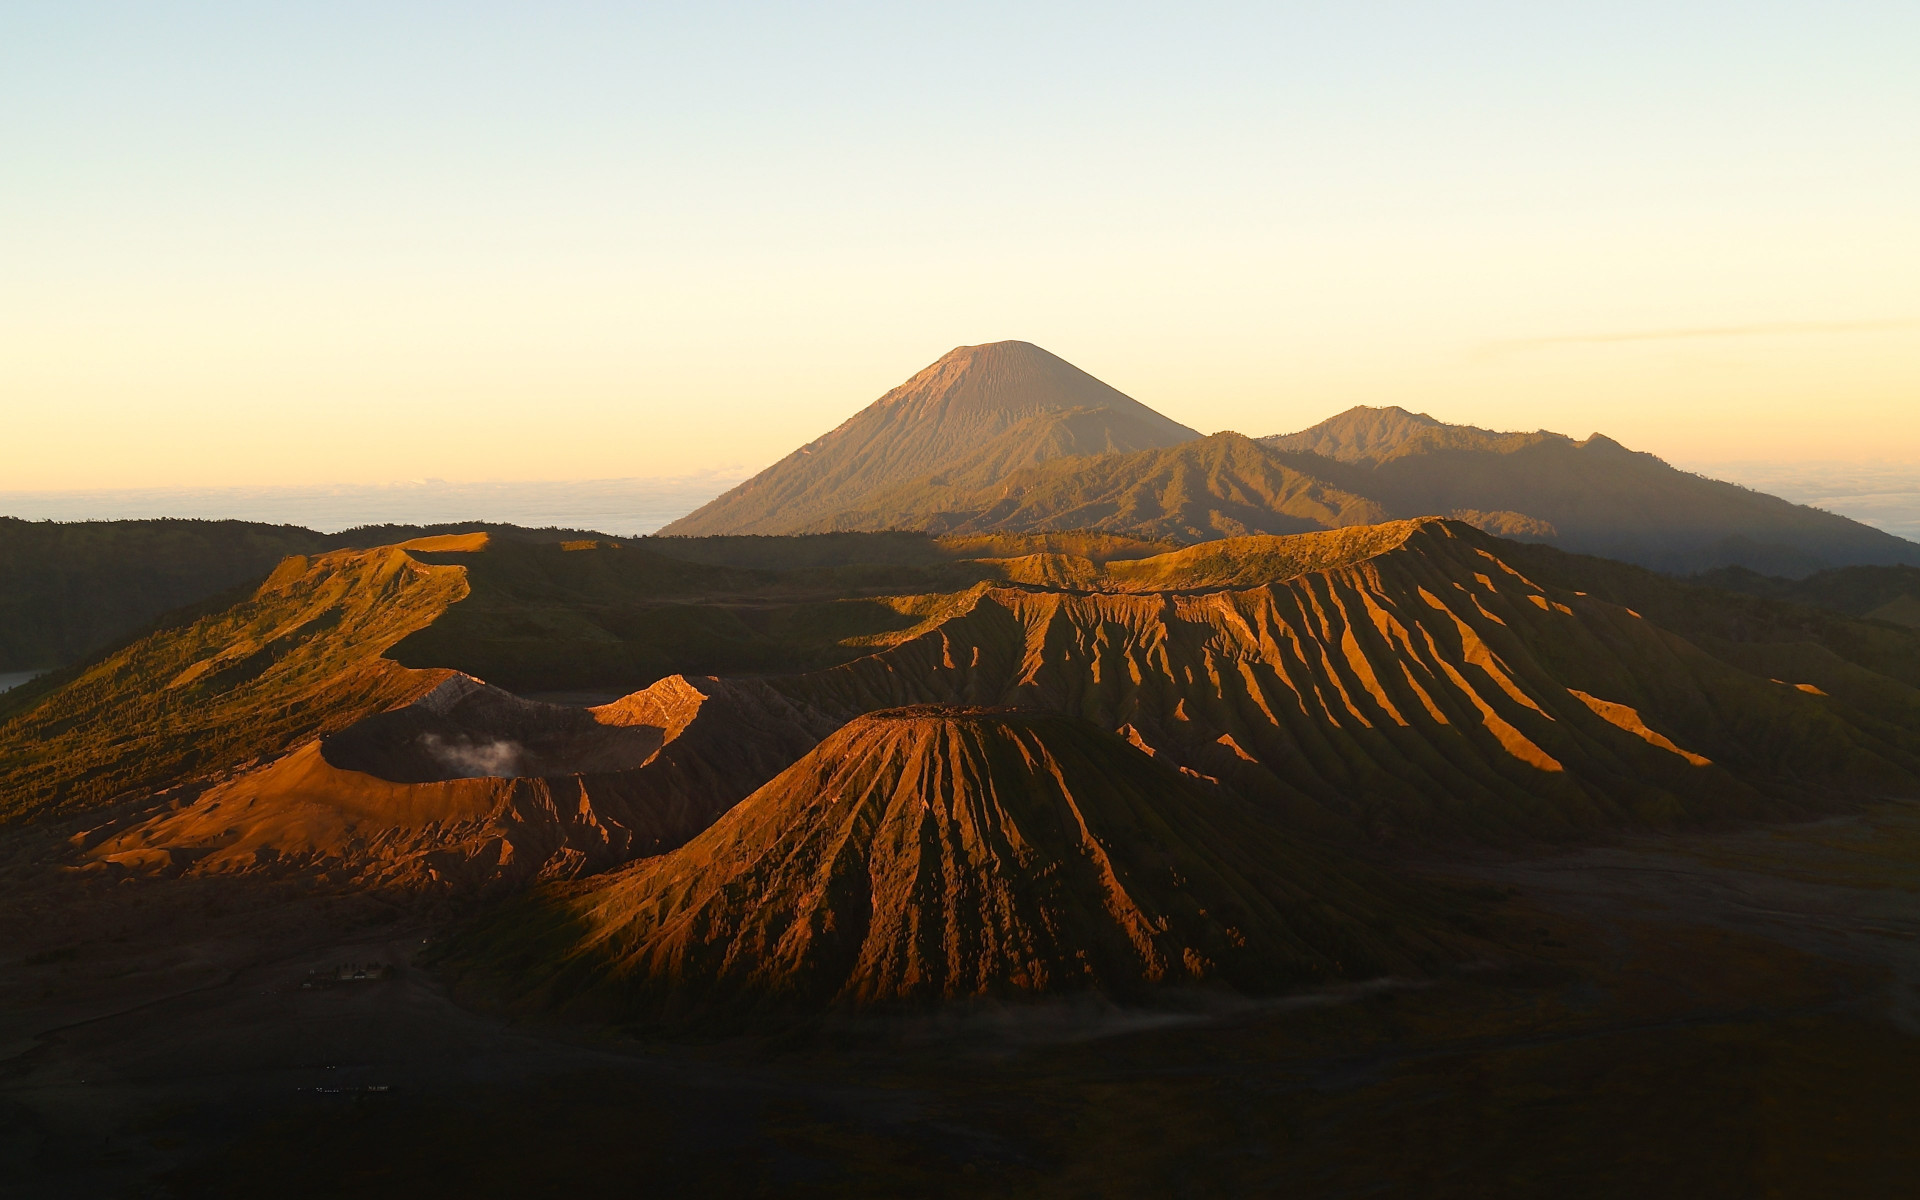 Active Volcanos from Mount Bromo | 1920x1200 wallpaper